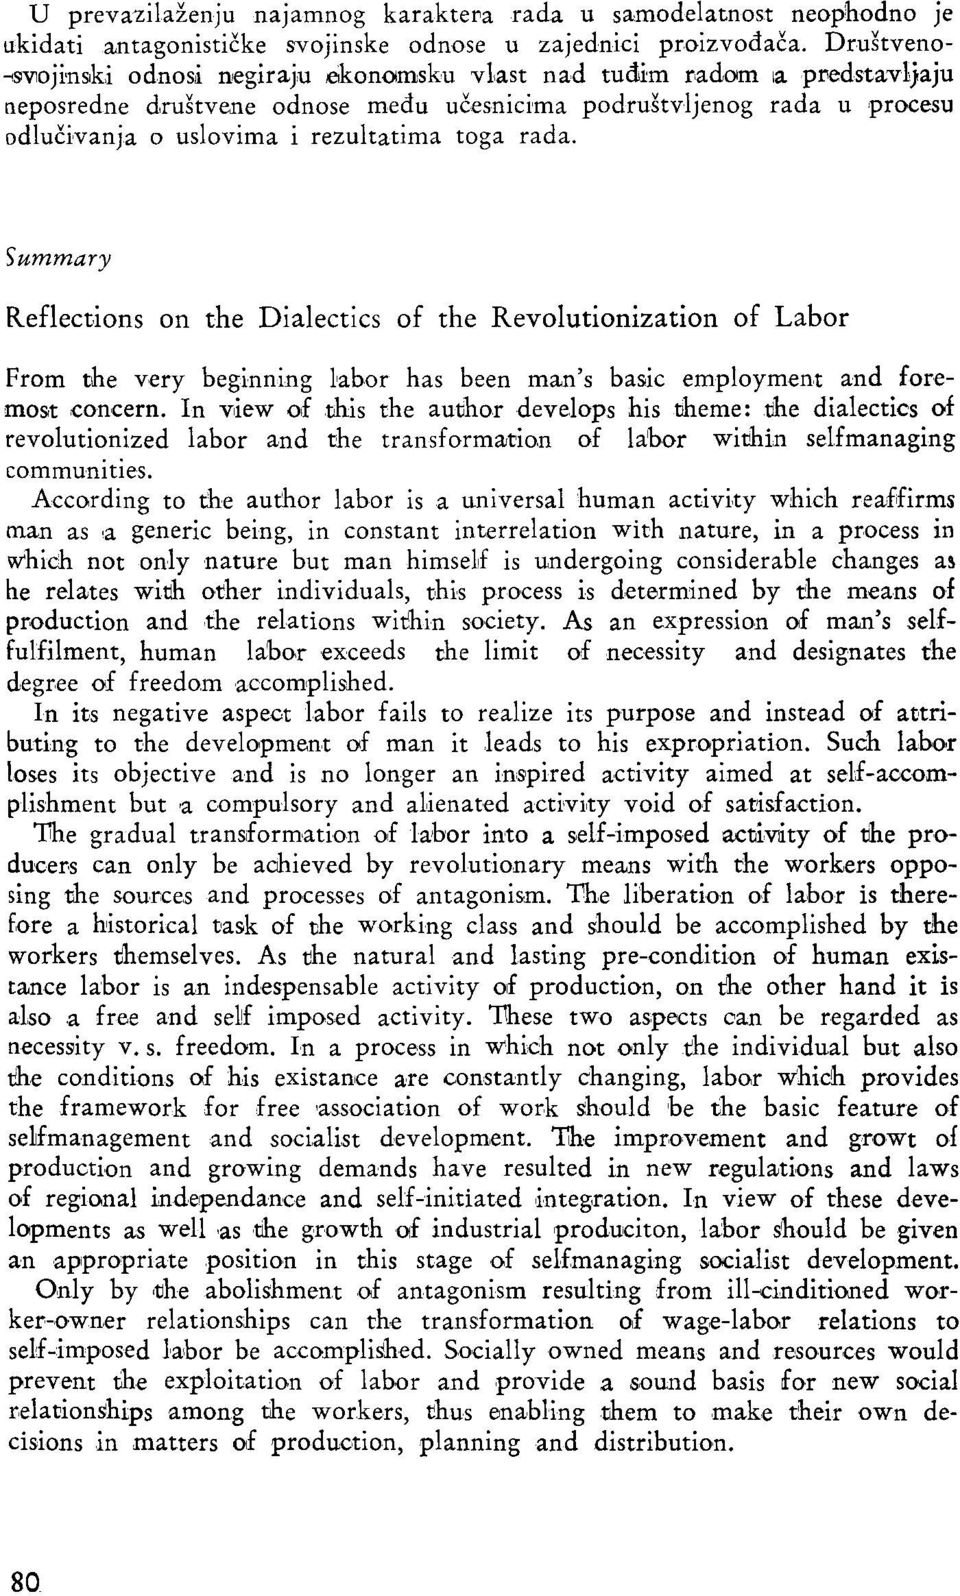 toga rada. Summary Reflections on the Dialectics of the Revolutionization of Labor From the very beginning labor has been man's basic employment and foremost concern.